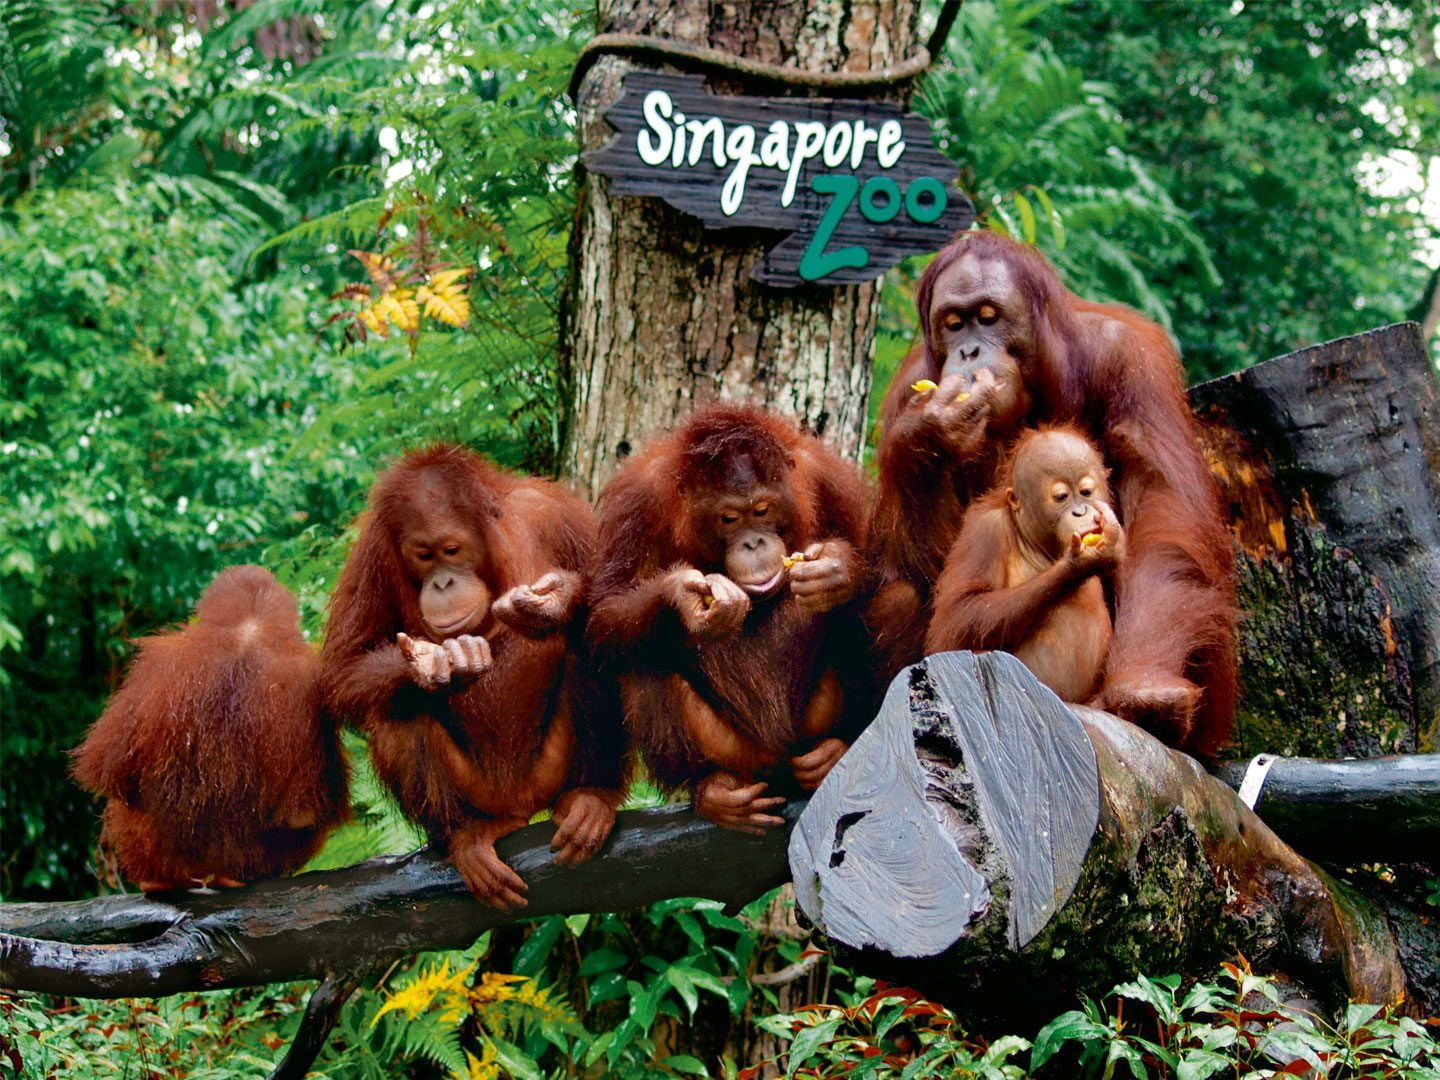 The conservation efforts of Wildlife Reserves Singapore have seen immesne success with rehabilitating hornbills as well as breeding orangutans. The primates have the largest open exhibit in the park without any walls, and with multi-tiered platforms. Photo: Kohis/Imagebroker/Dinodia